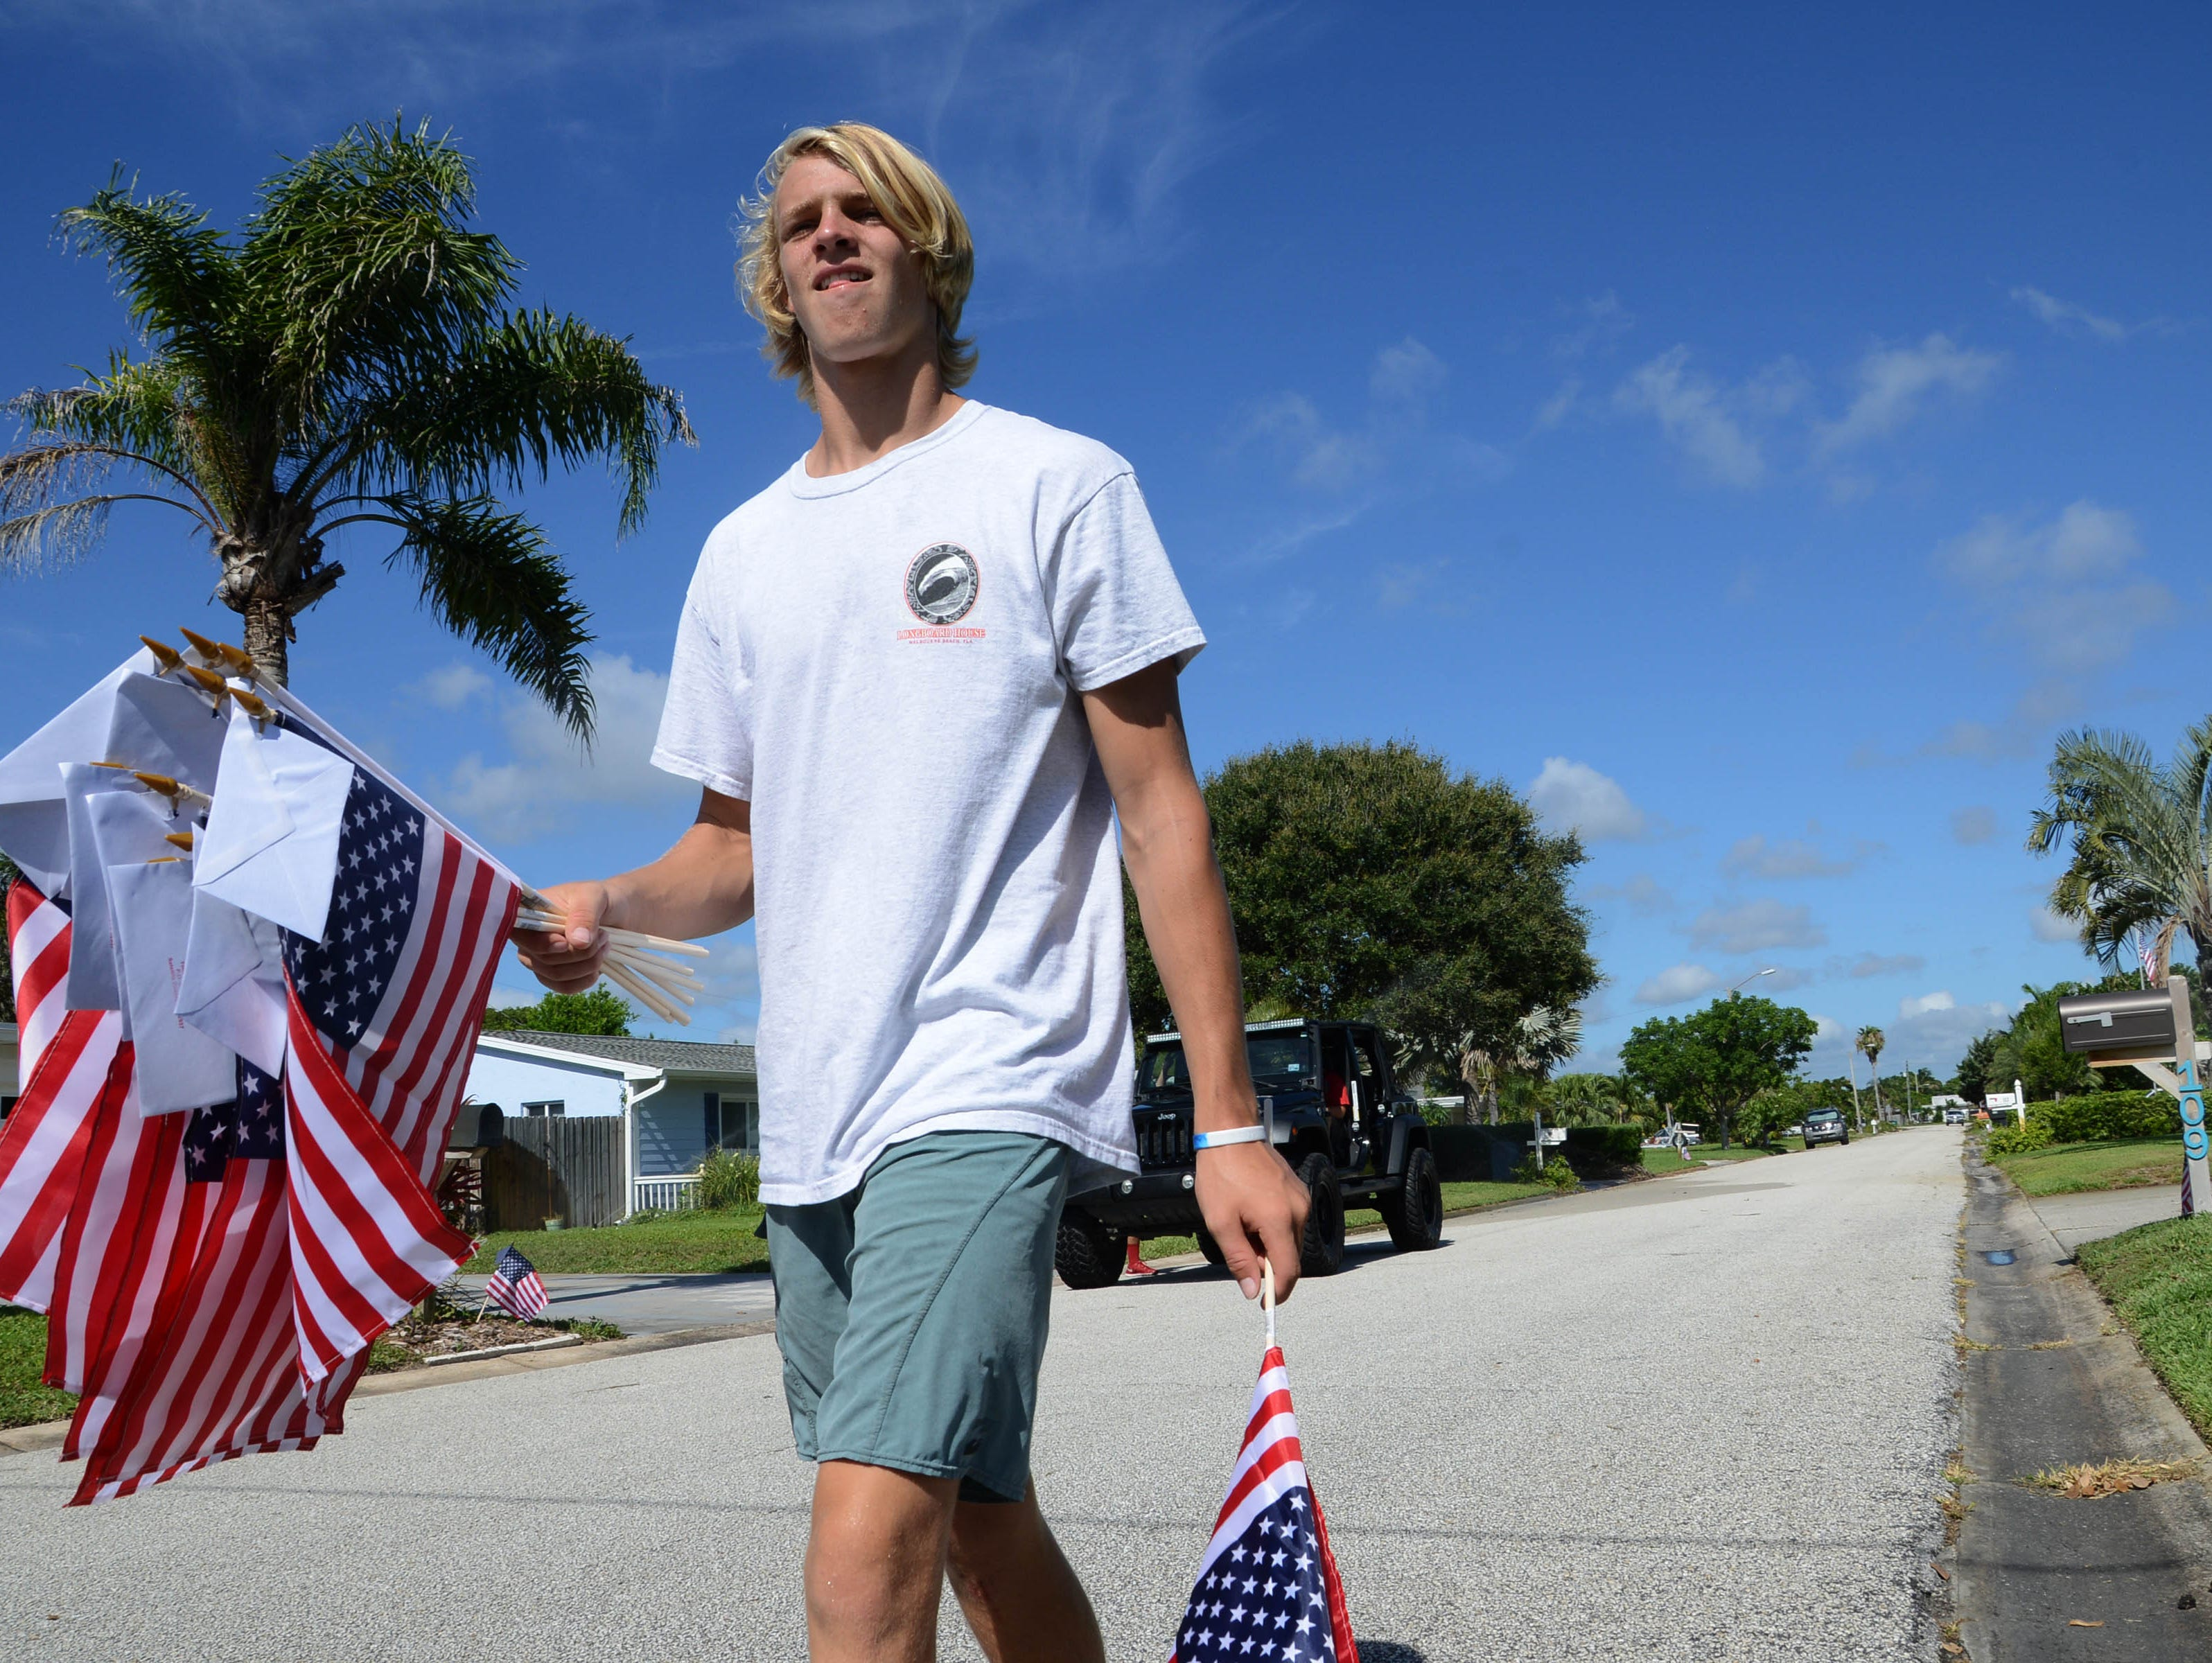 Noah Mumme helps set out American flags Thursday morning in Satellite Beach. Students from Satellite High's football and ROTC squads help distribute American flags as part of a fundraiser for the school.